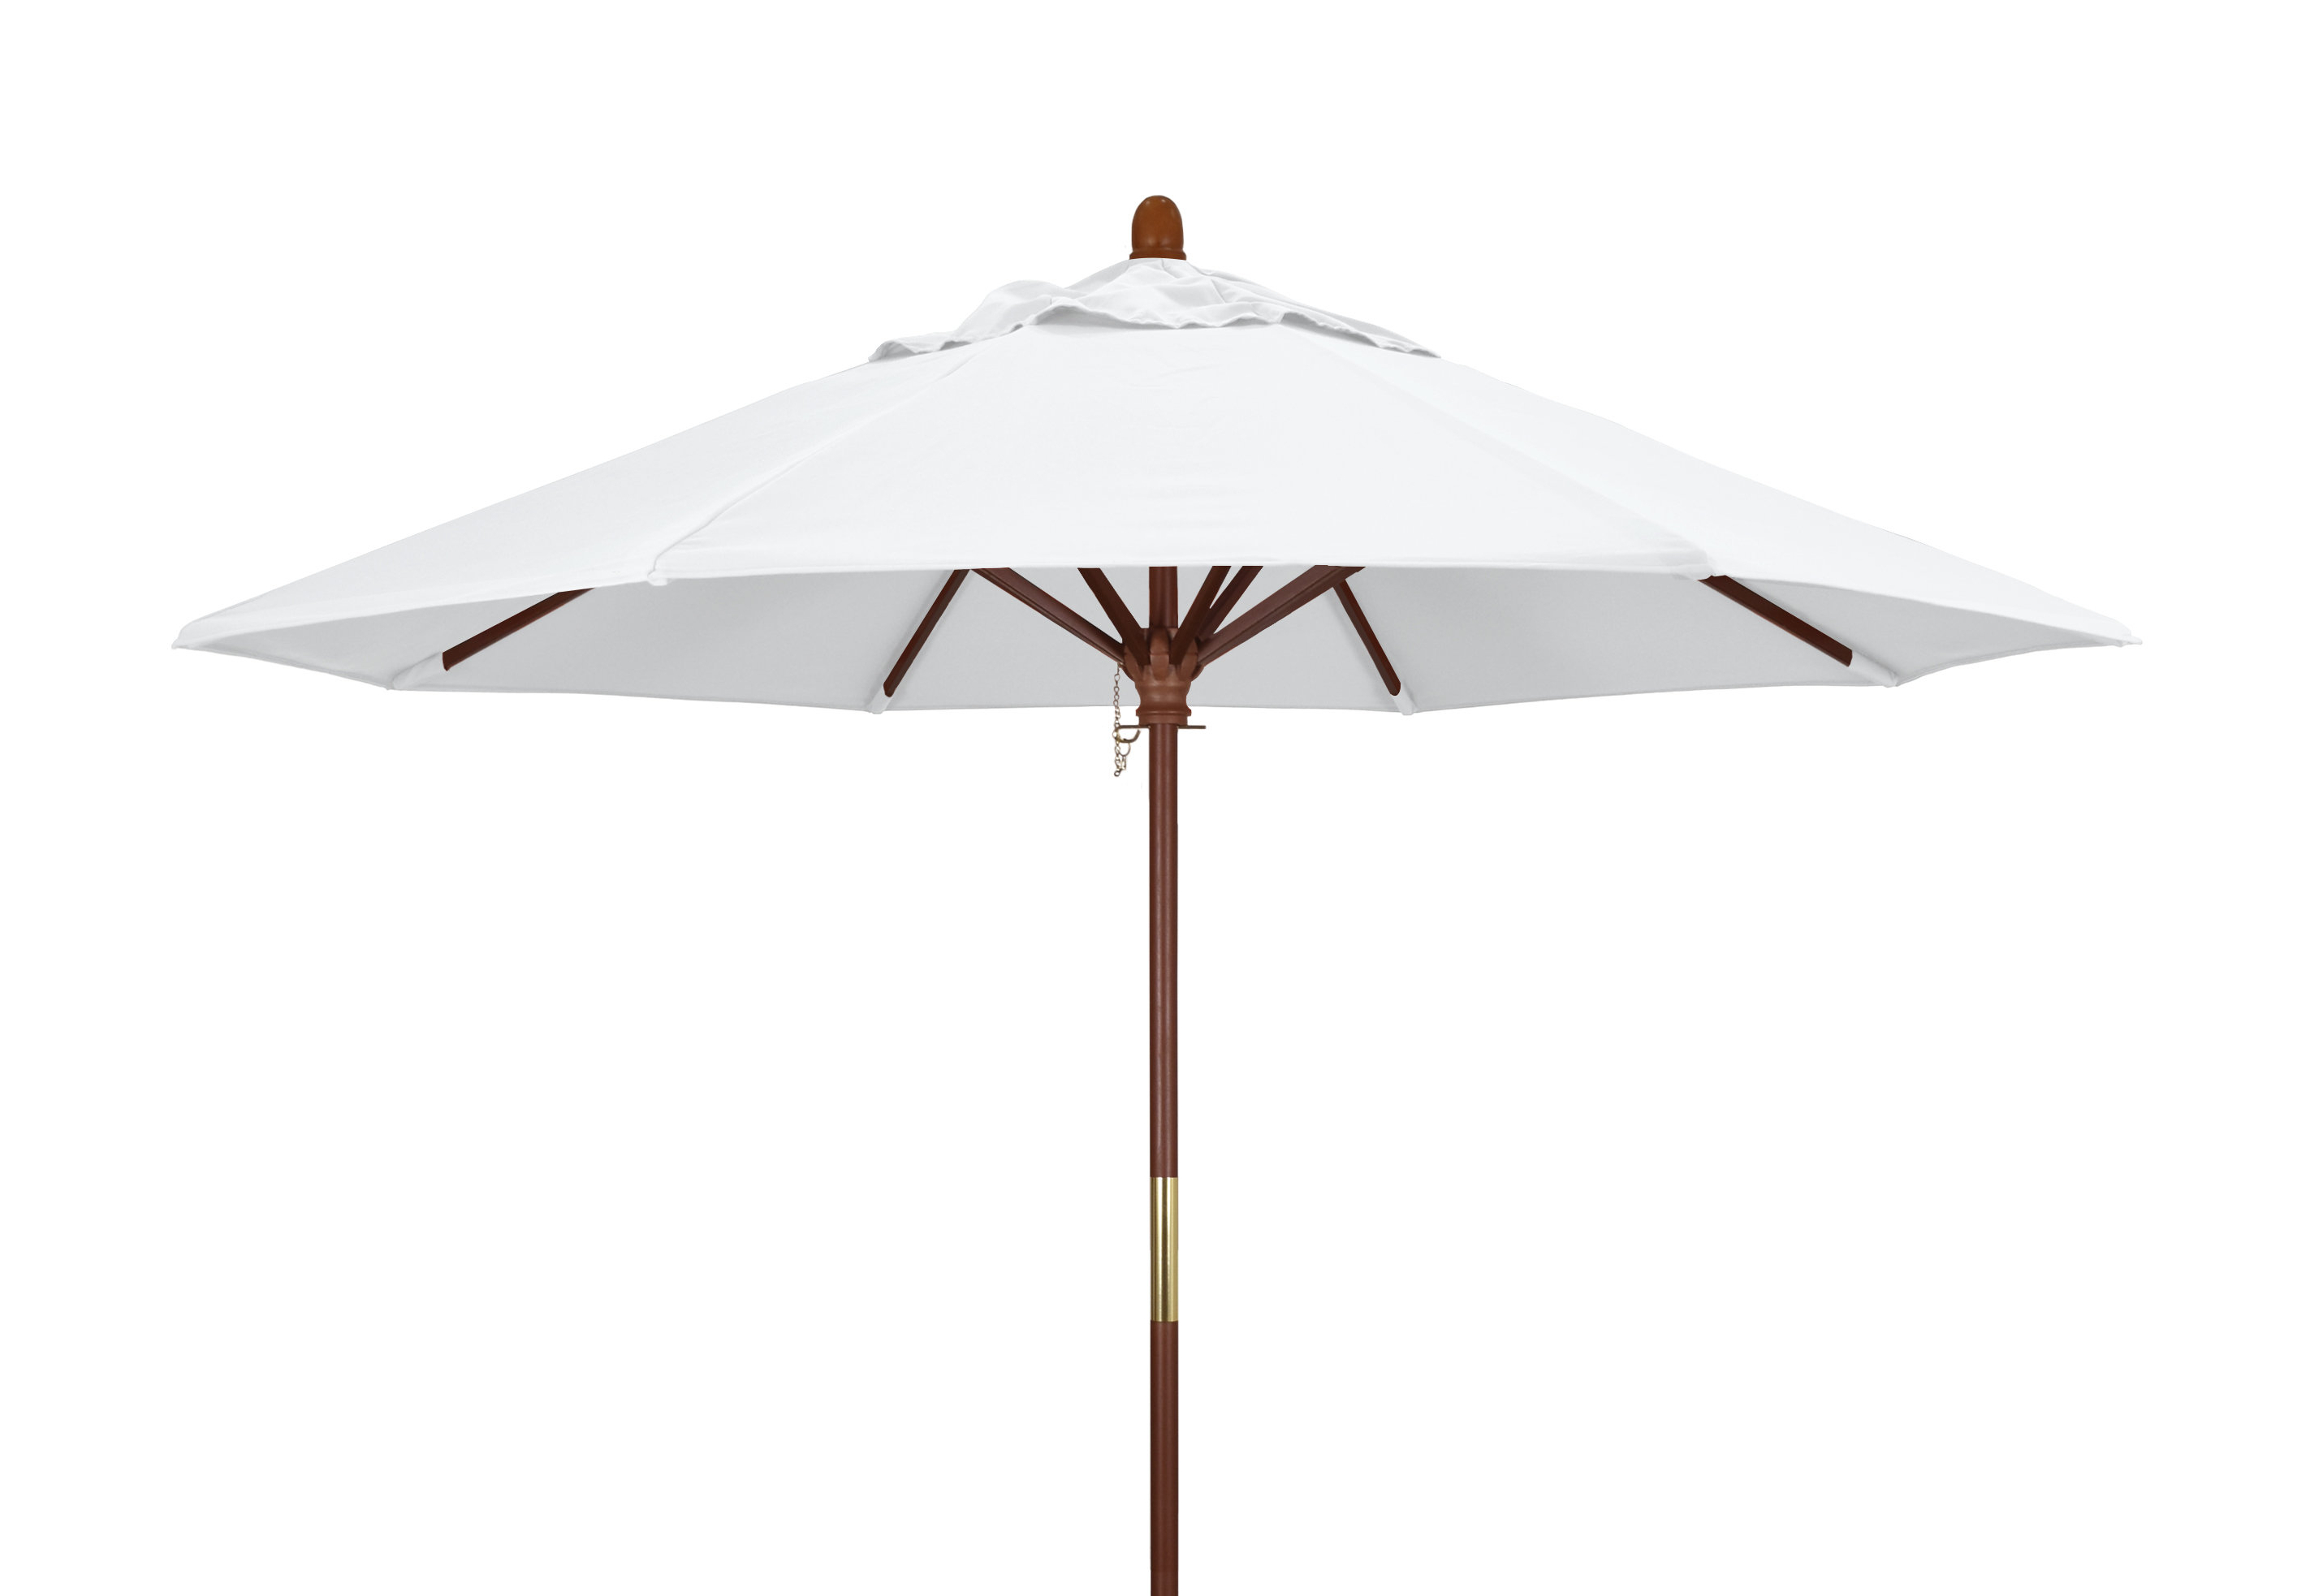 Mraz 9' Market Umbrella Pertaining To Most Up To Date Priscilla Market Umbrellas (Gallery 11 of 20)